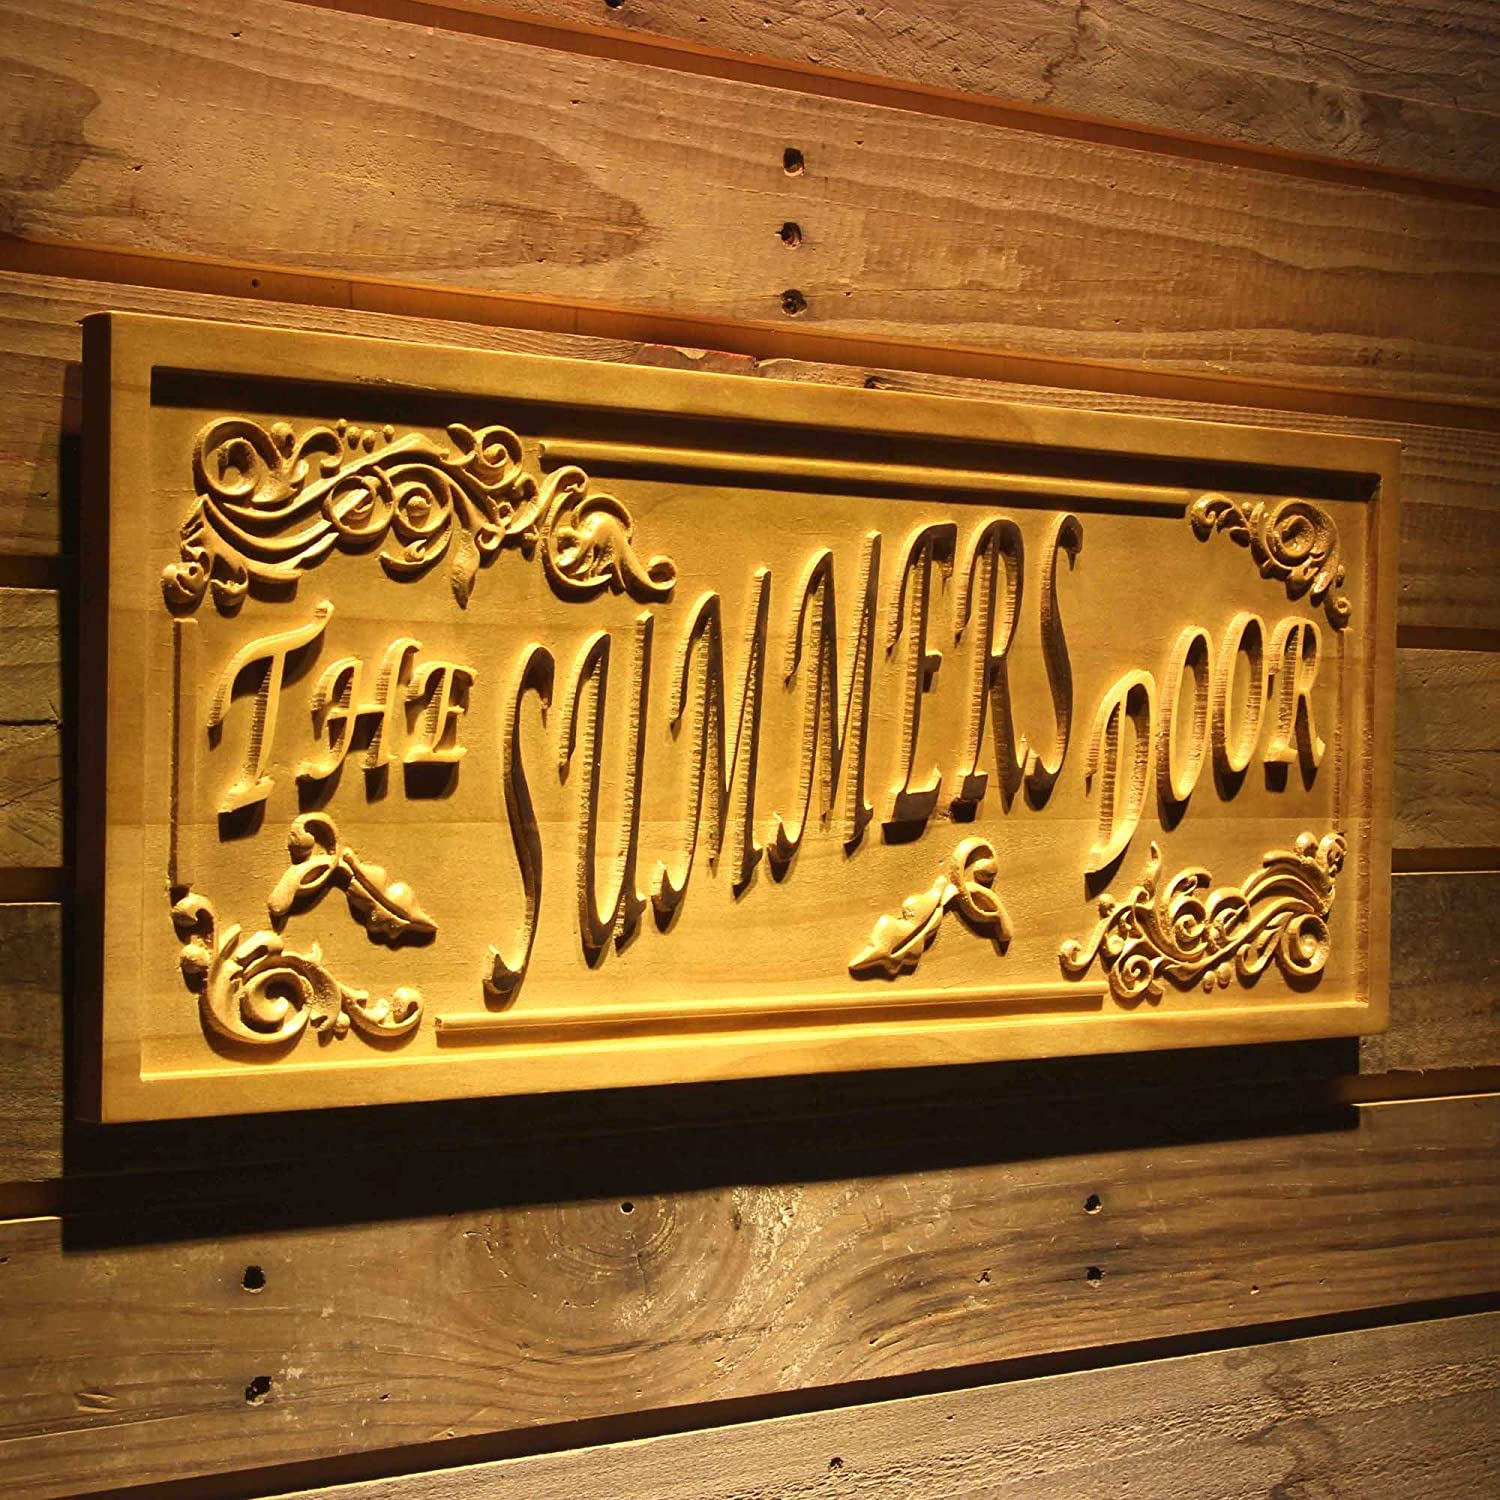 Wpa0355 Name Personalized The Door Decoration Name Gifts Wood Engraved Wooden Sign - Standard 23  x 9.25